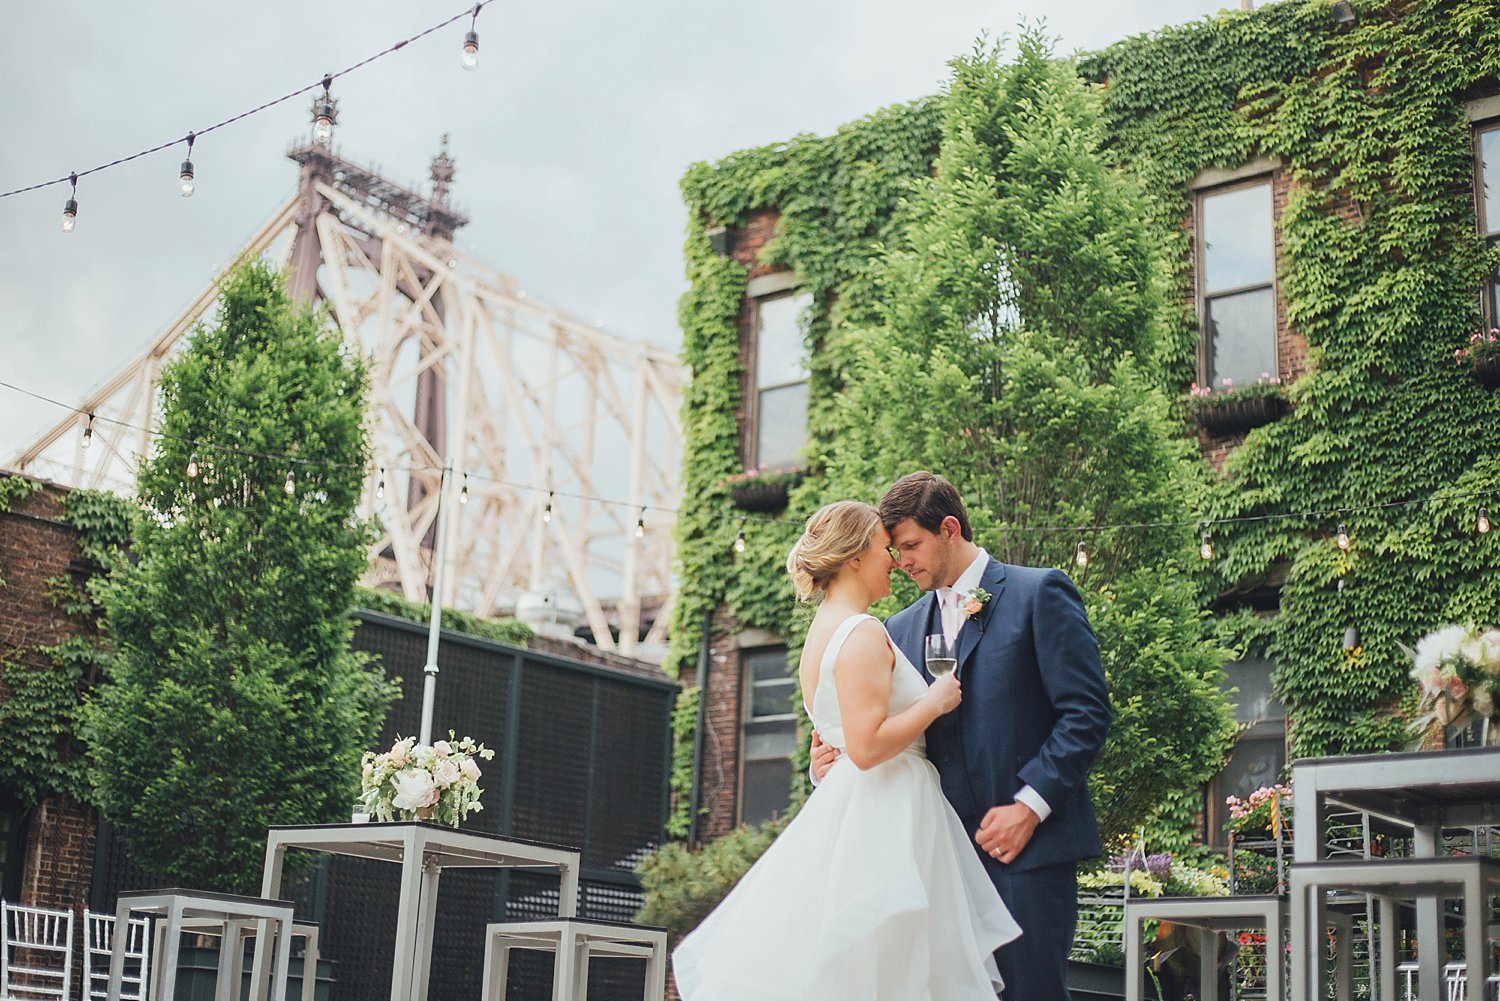 nyc-wedding-photography-nj-tri-state-cinematography-intothestory-by-moo-jae_0346.jpg